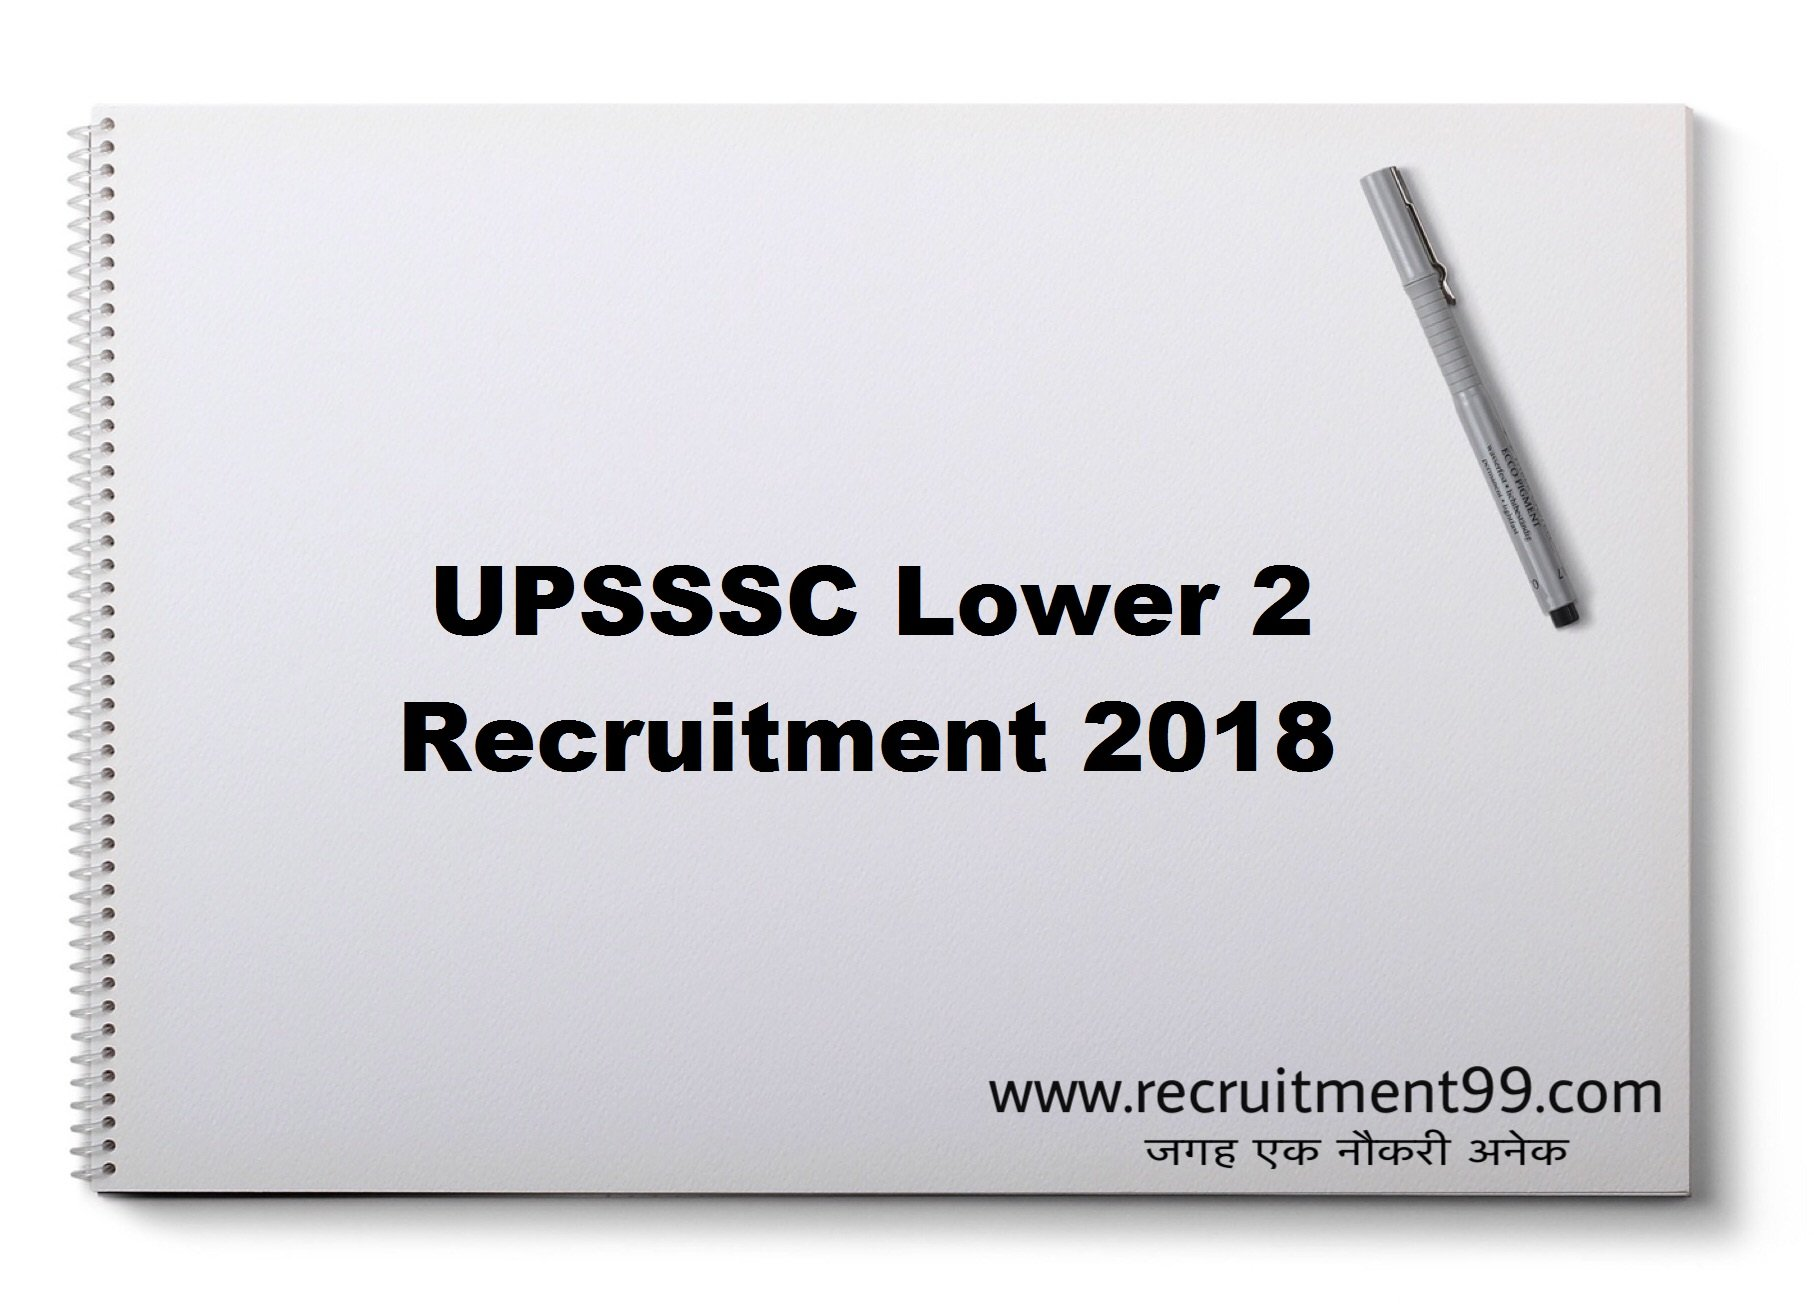 UPSSSC Lower 2 Recruitment Admit Card Result 2018